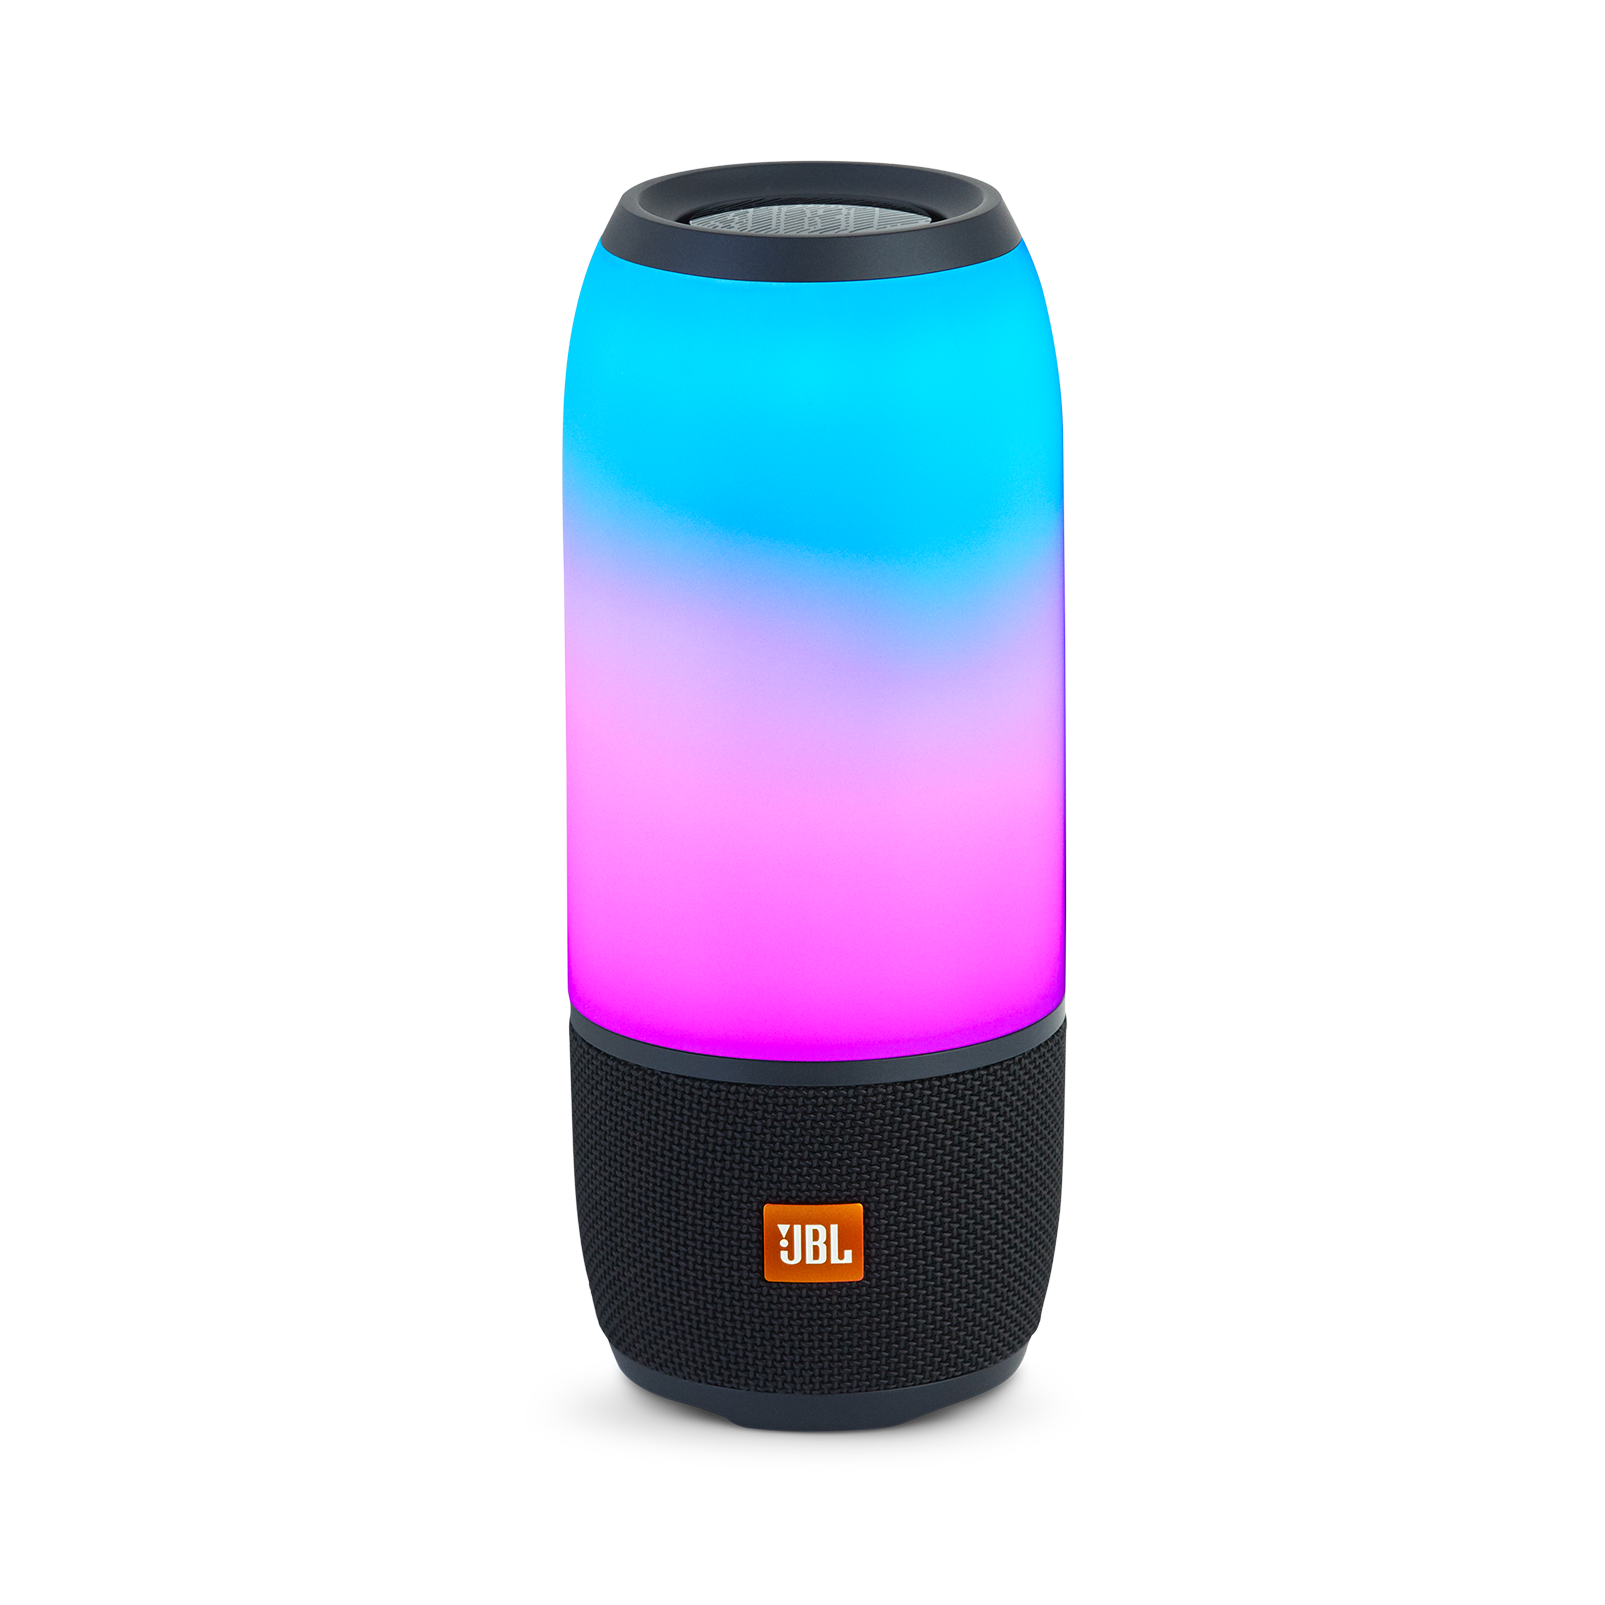 JBL Pulse 3 refurbished Black